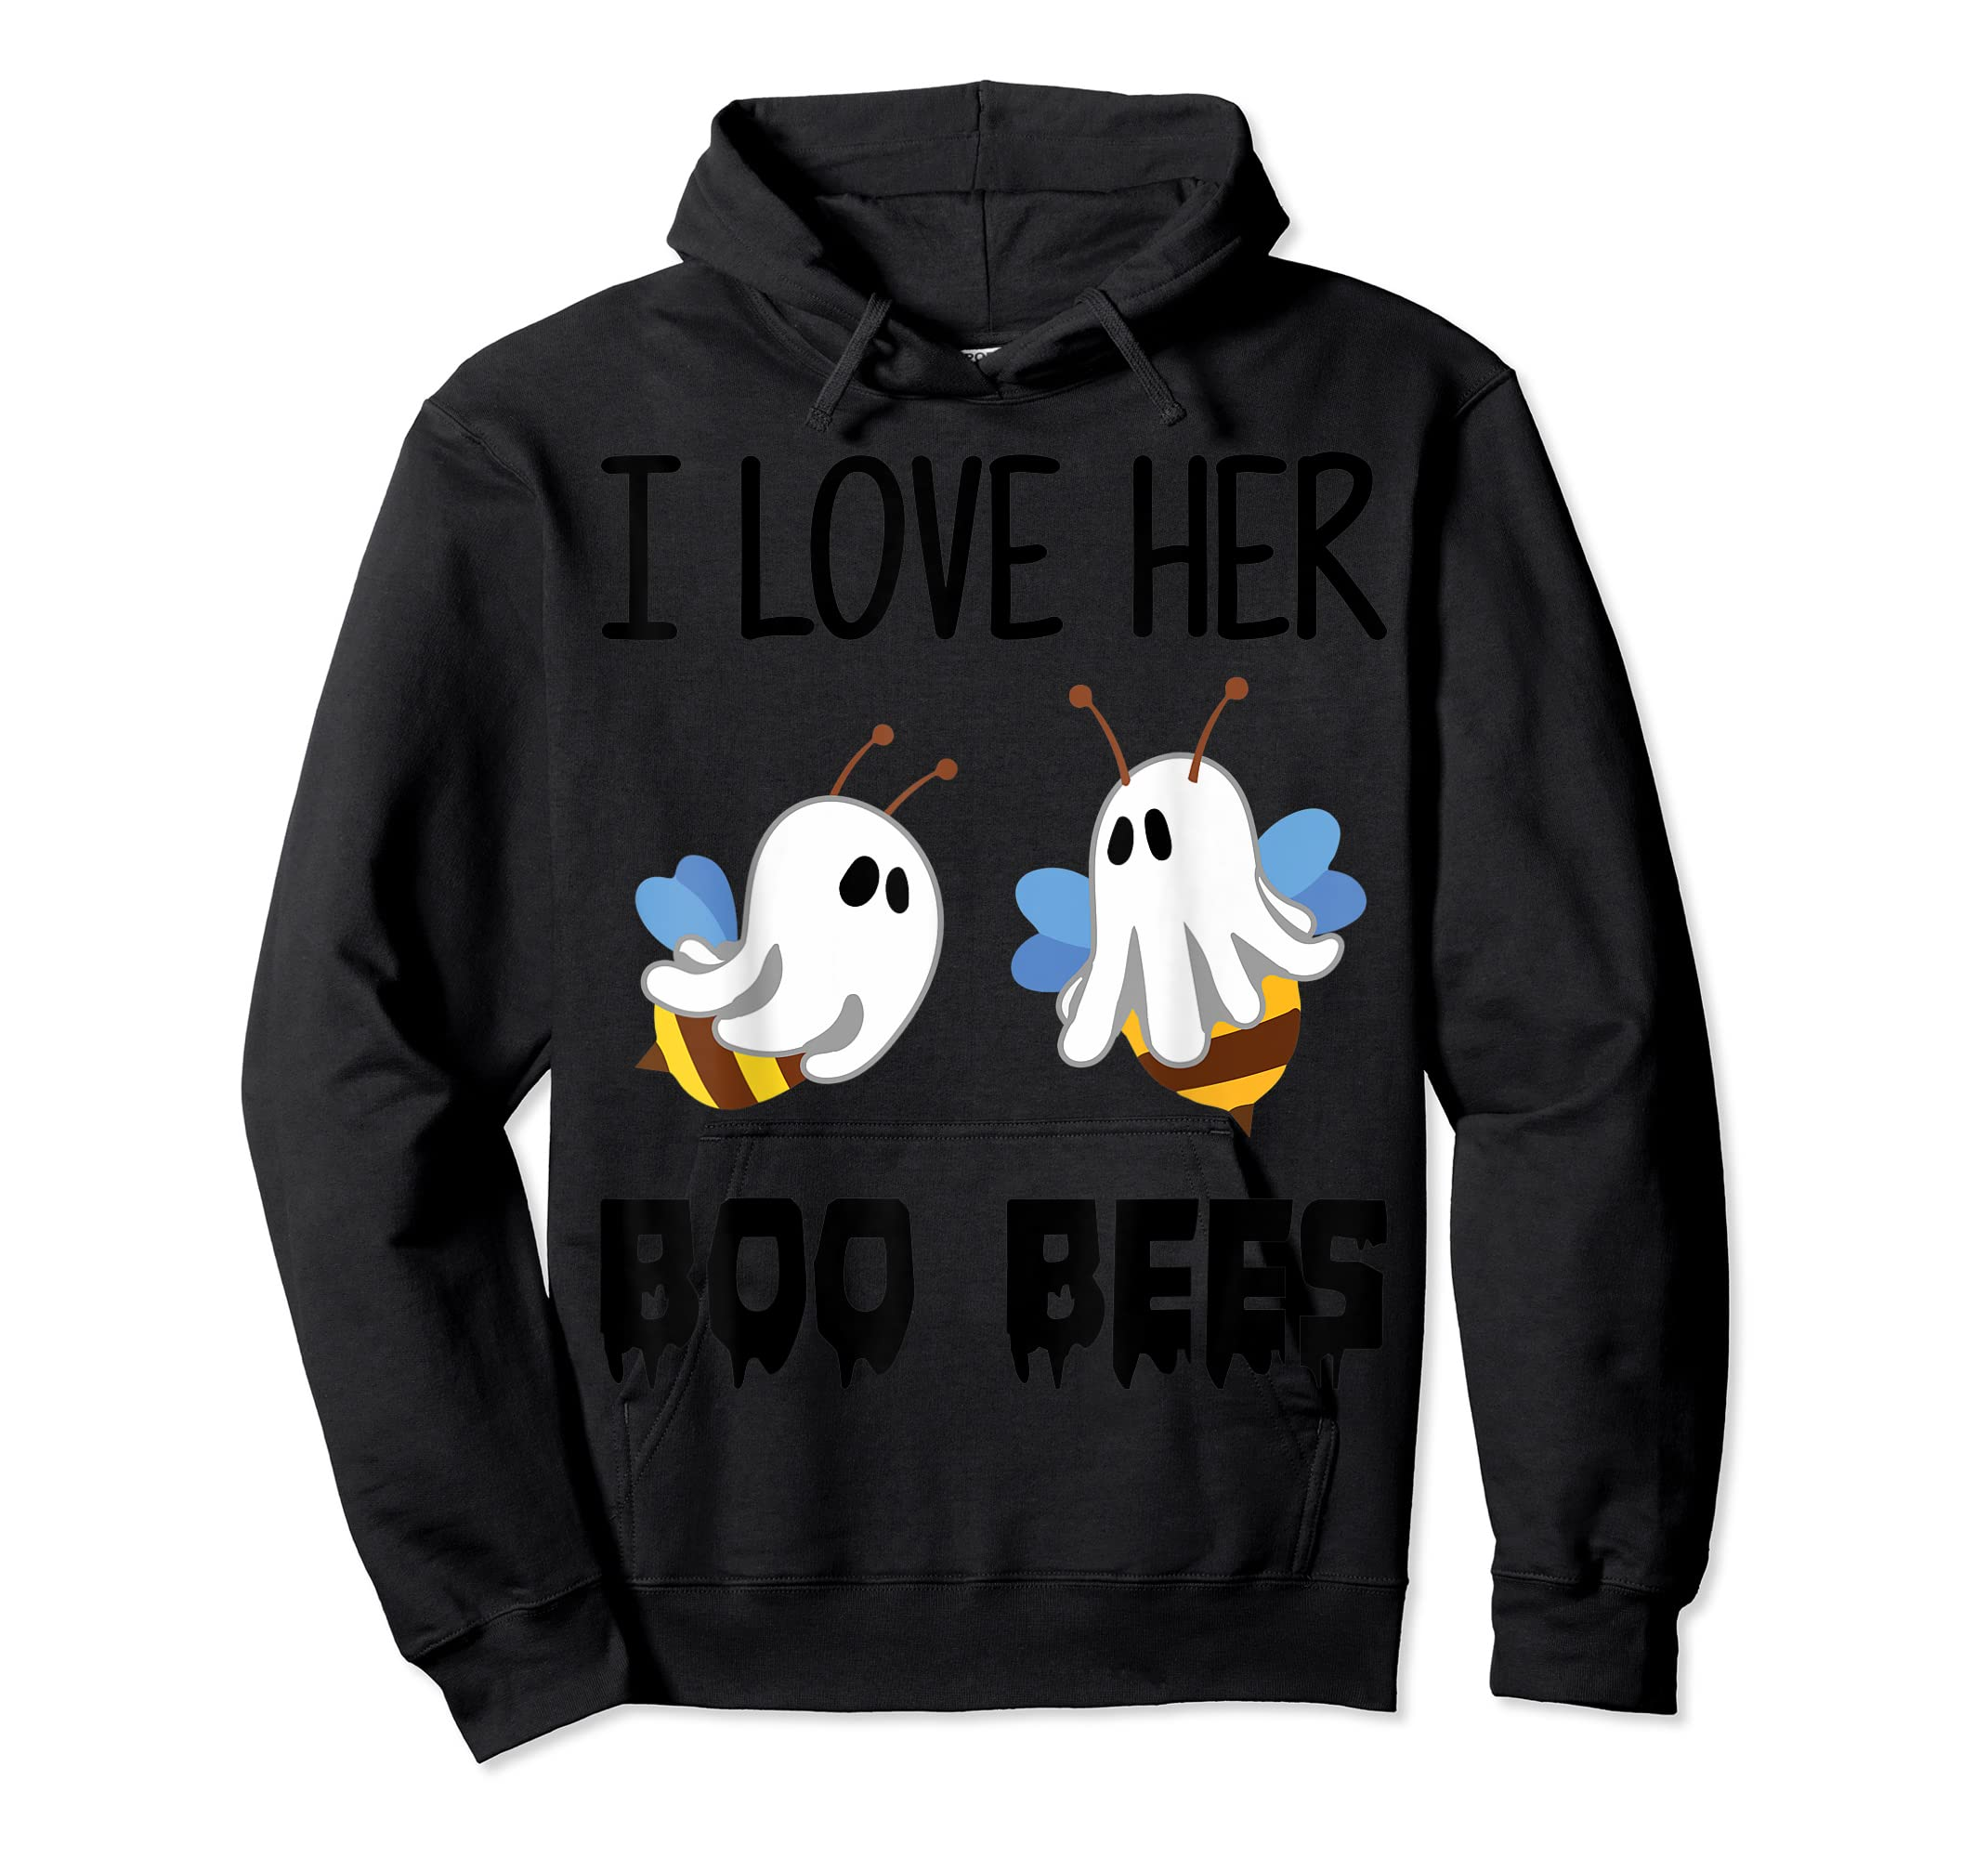 I Love Her Boo Bees Couples Funny Halloween Costume Gift T-Shirt-Hoodie-Black